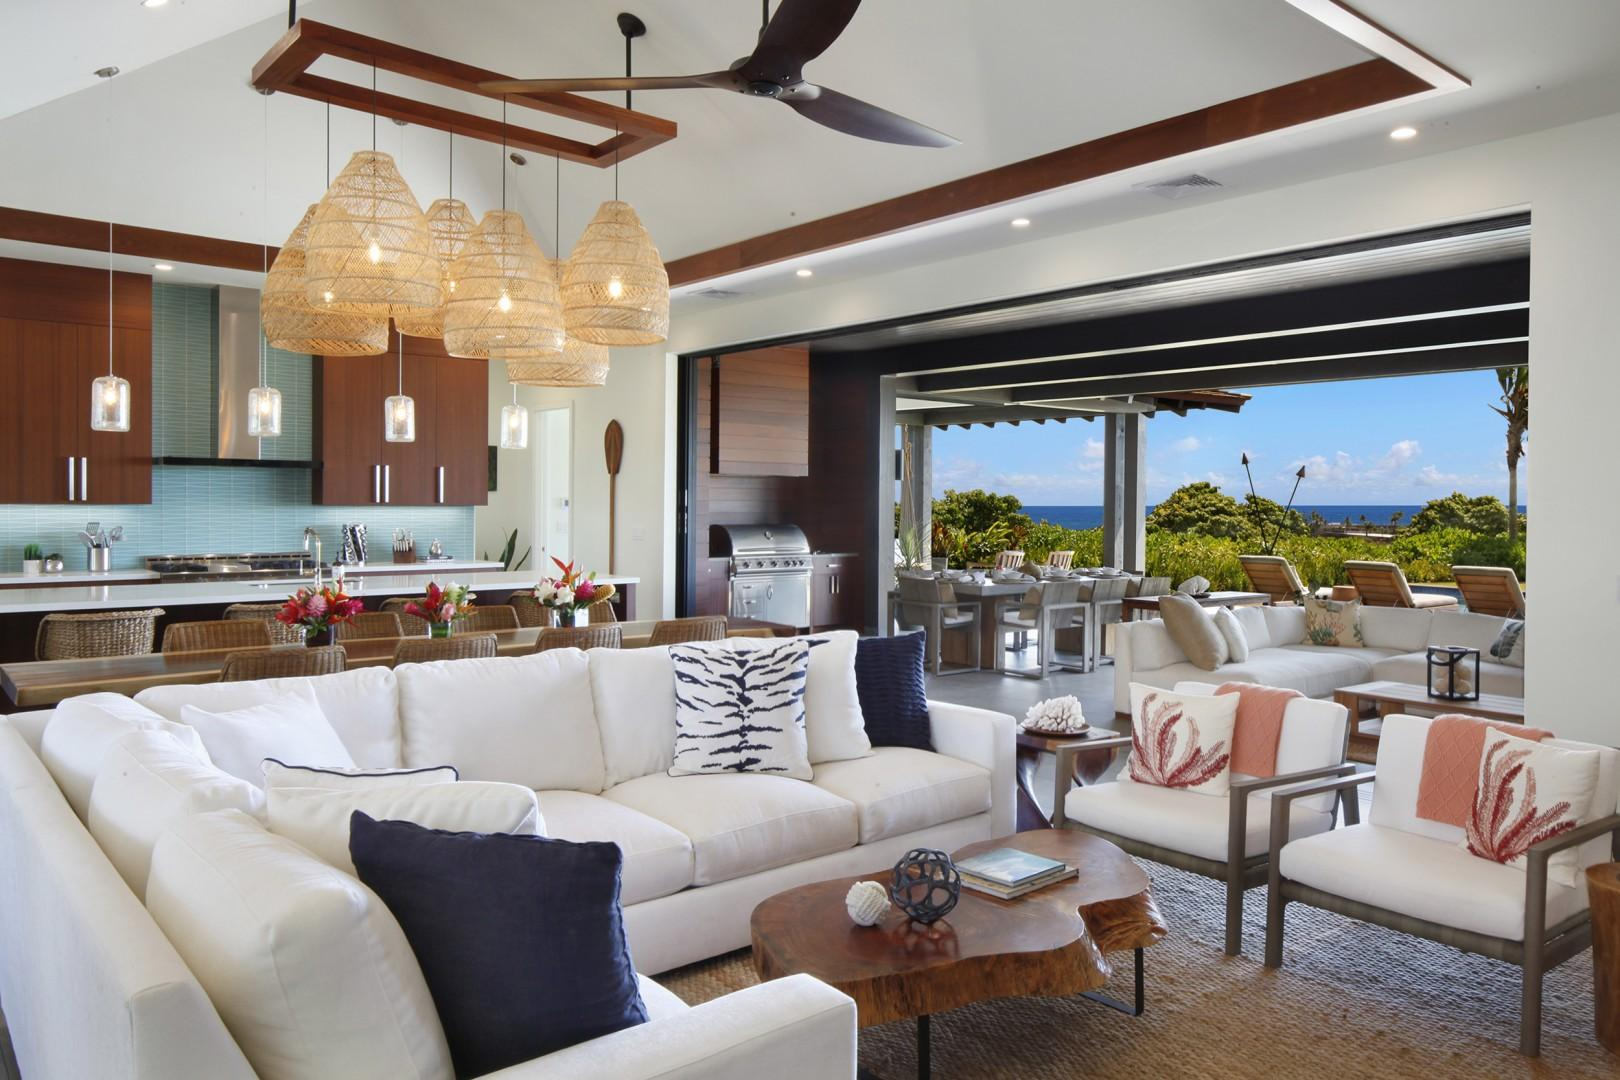 Living room / outdoor living space with ocean views